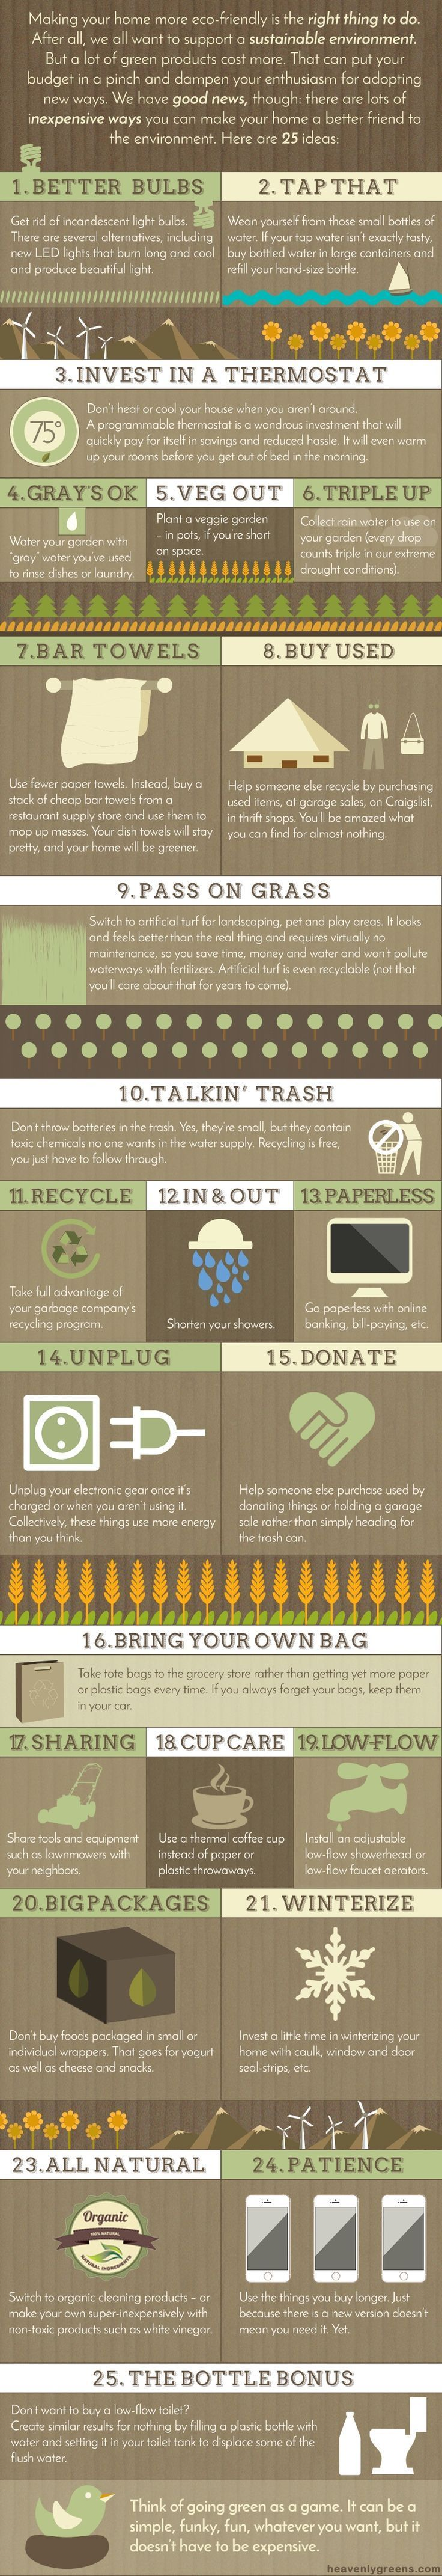 Eco-friendly ideas to save water and the planet at home. http://www.heavenlygreens.com/blog/infographic-making-your-home-more-eco-friendly